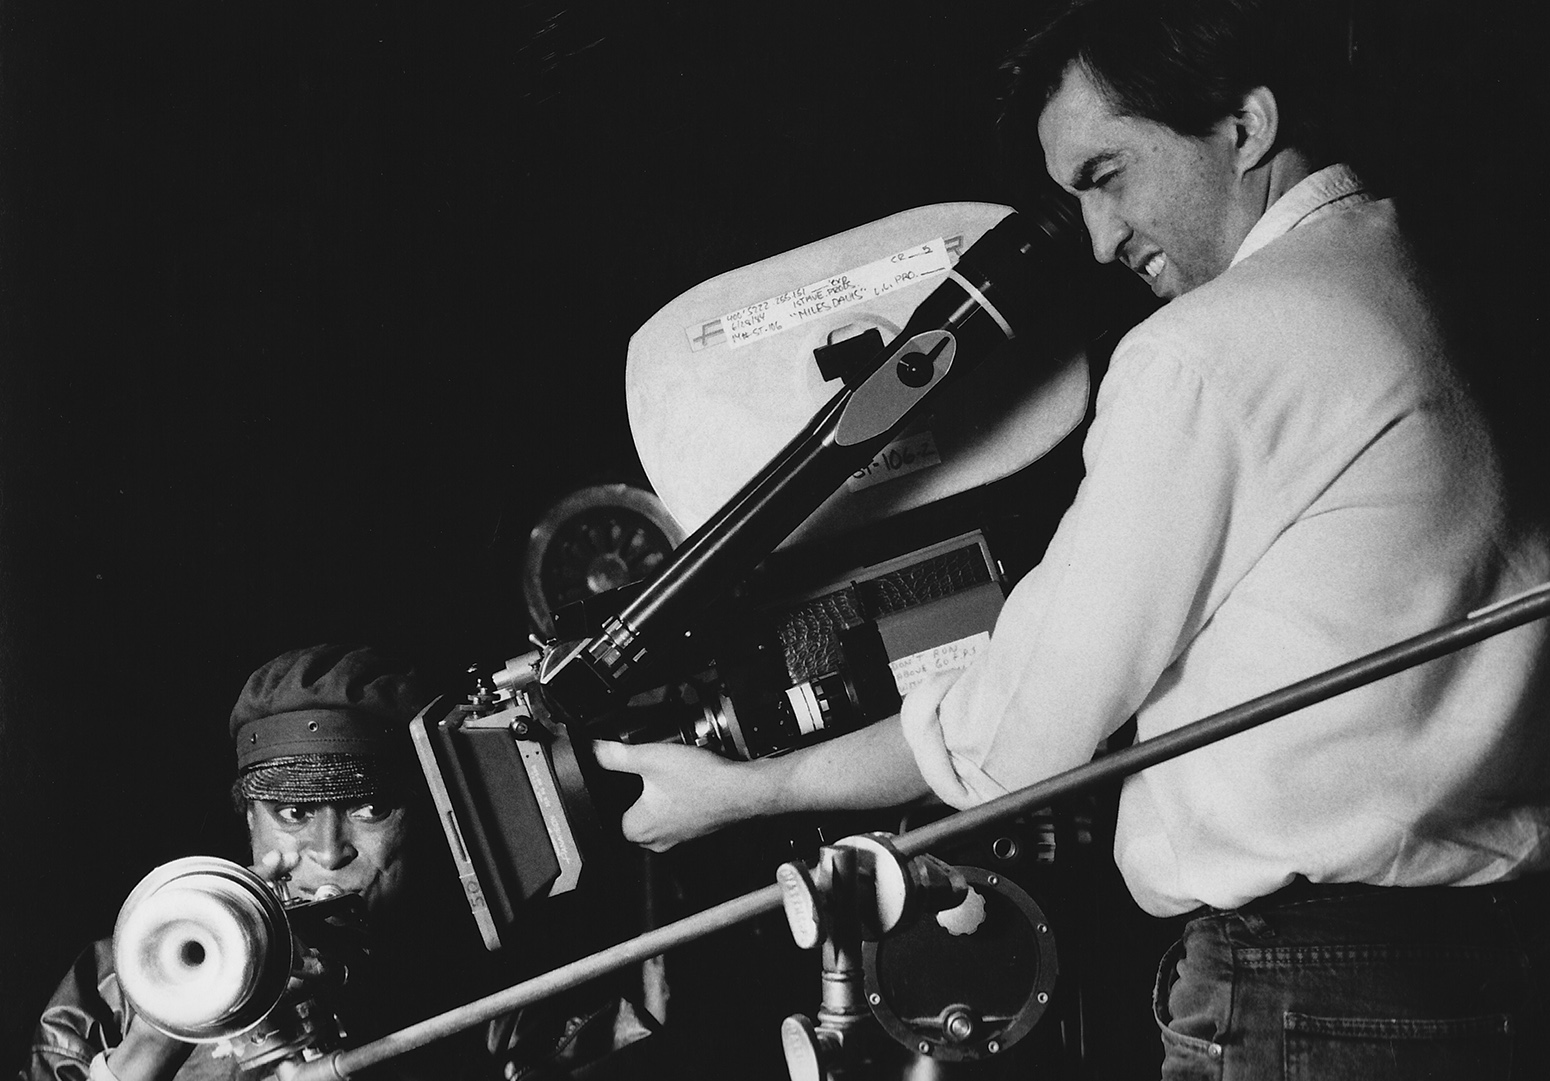 Fortunato at work on a Miles Davis video in 1984.